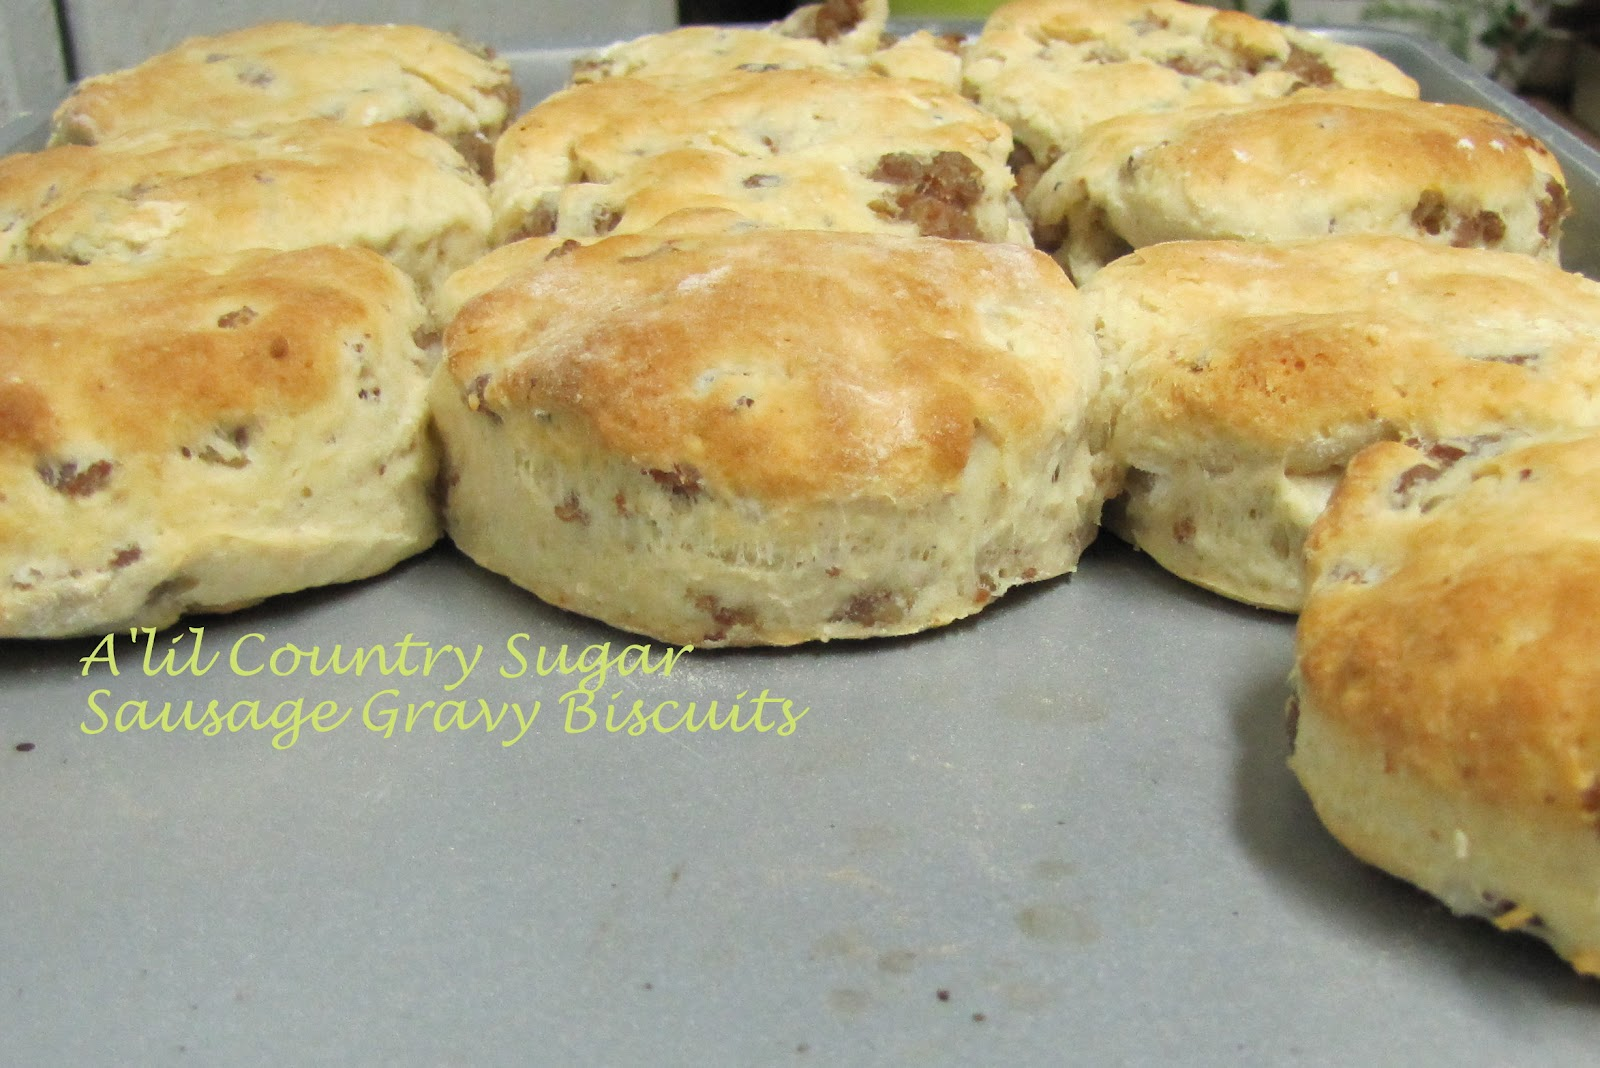 Sausage Gravy Biscuits recipe